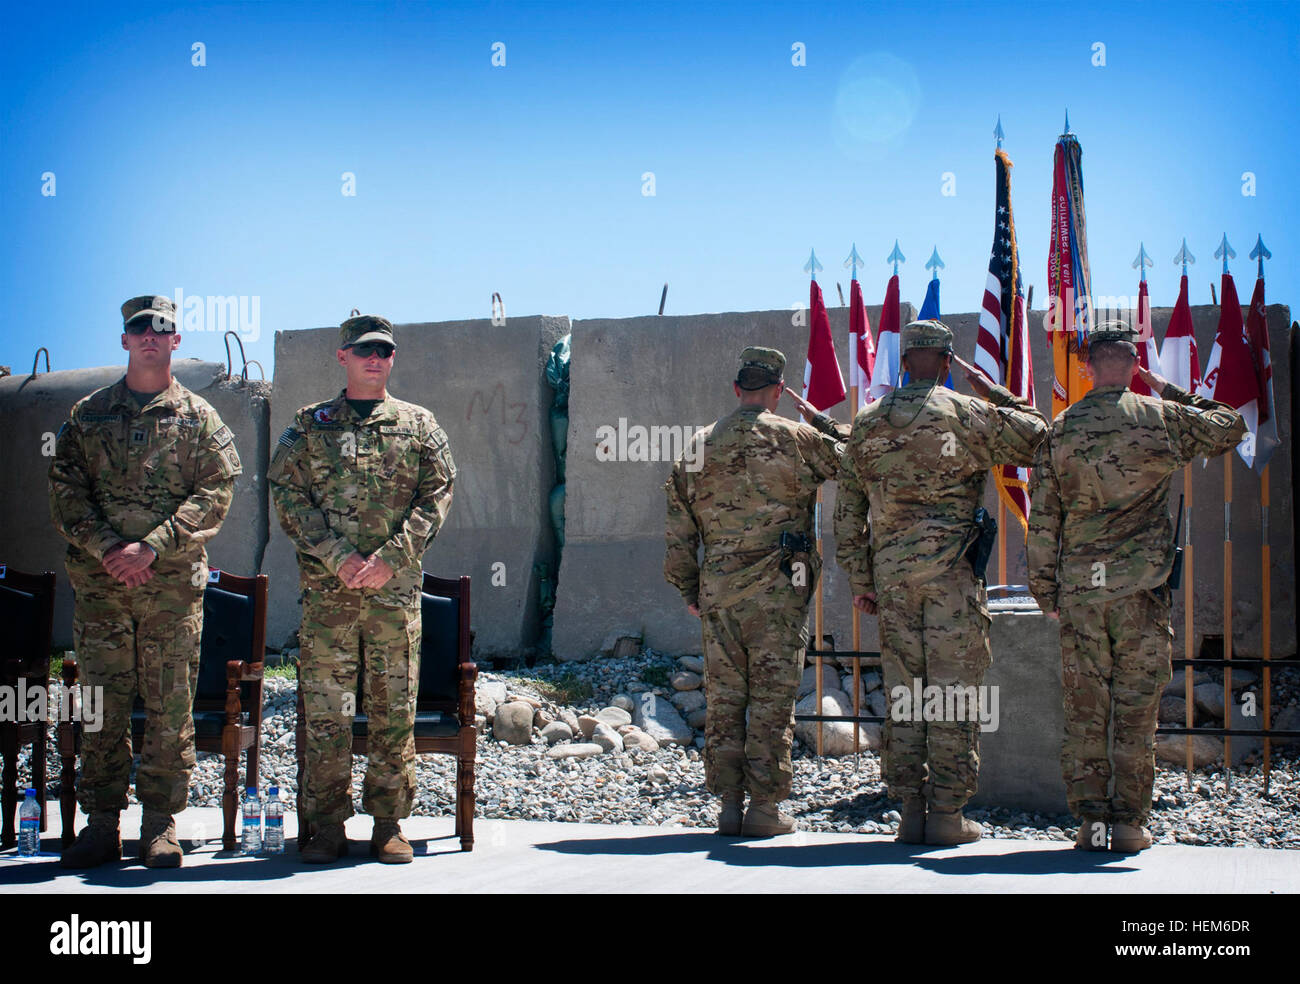 U.S. Army Capt. Augustine Castronovo, of Woodland Hills, Calif., and U.S. Army Staff Sgt. Deane Bostick stand watch - Stock Image